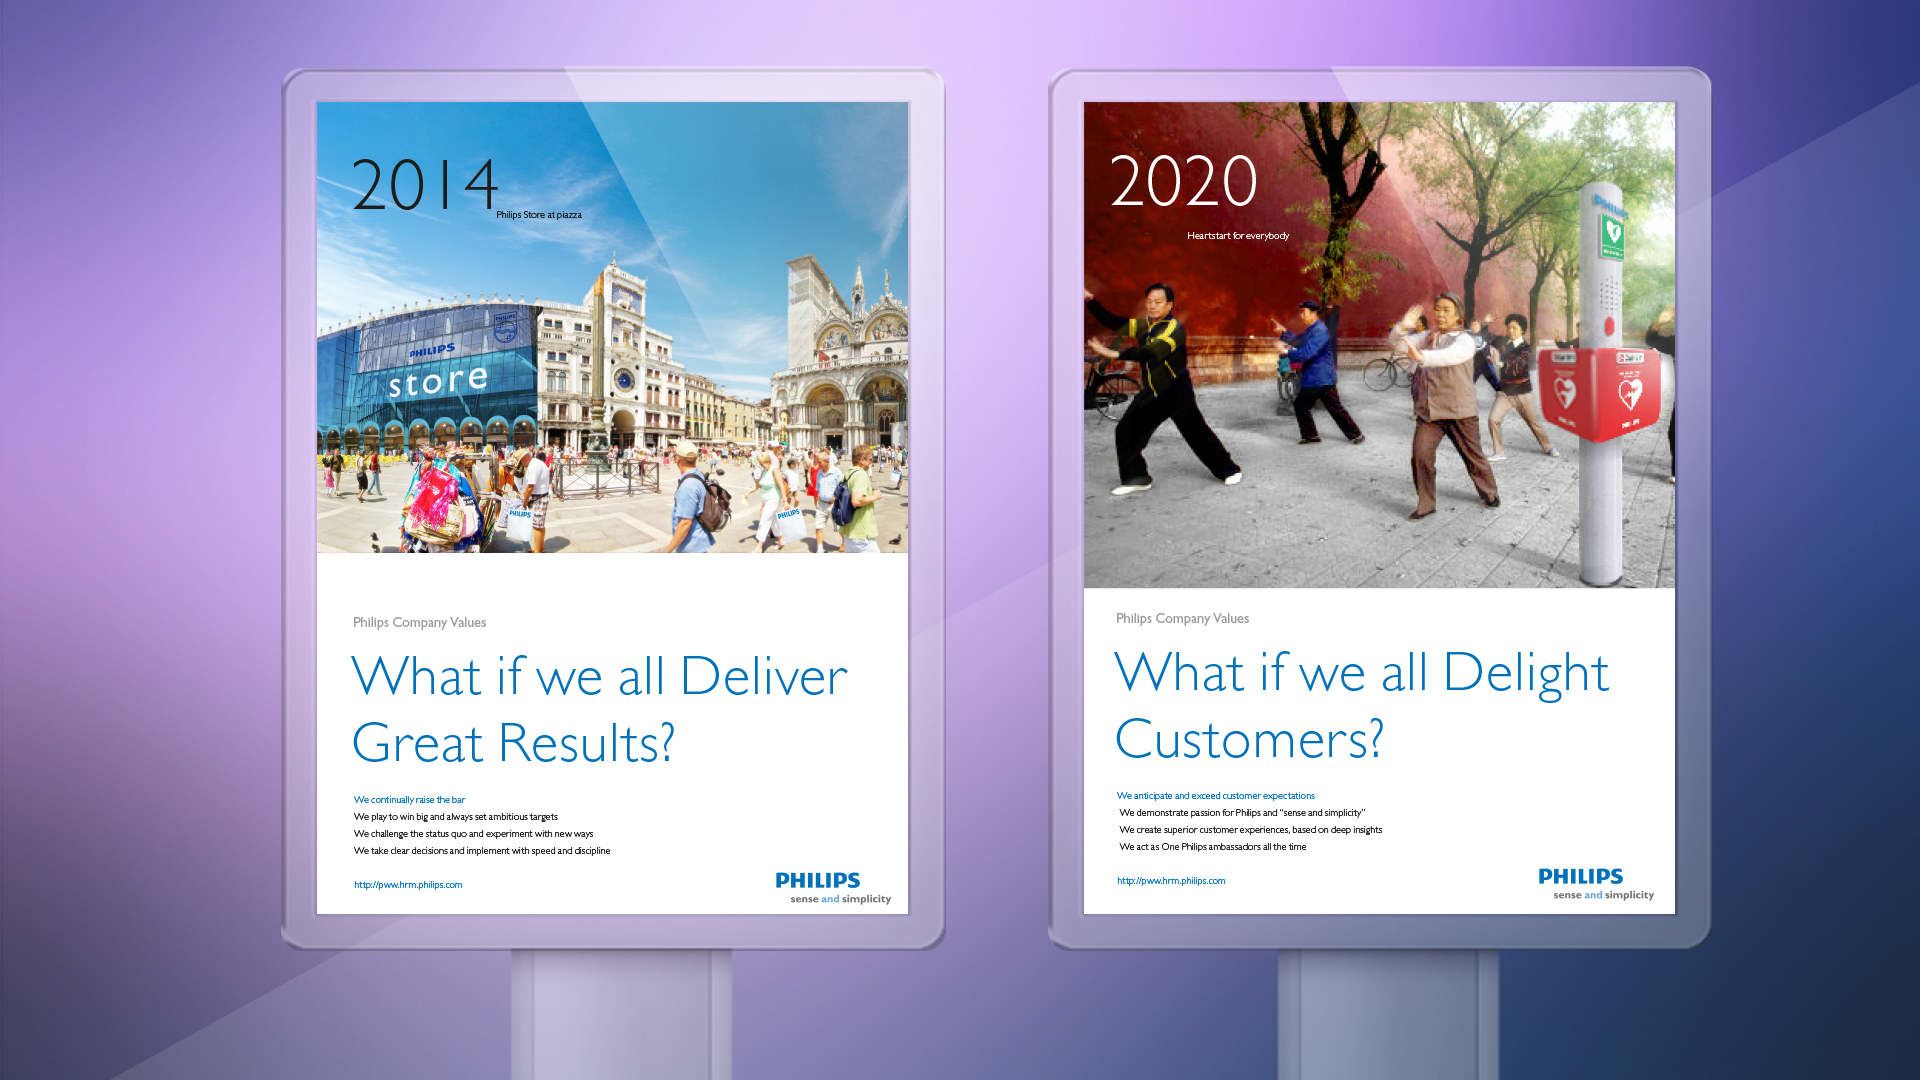 Royal Philips. Case. Visuals pitch, corporate campagne, concept, art direction, branding & identity, design. Sham Ramessar